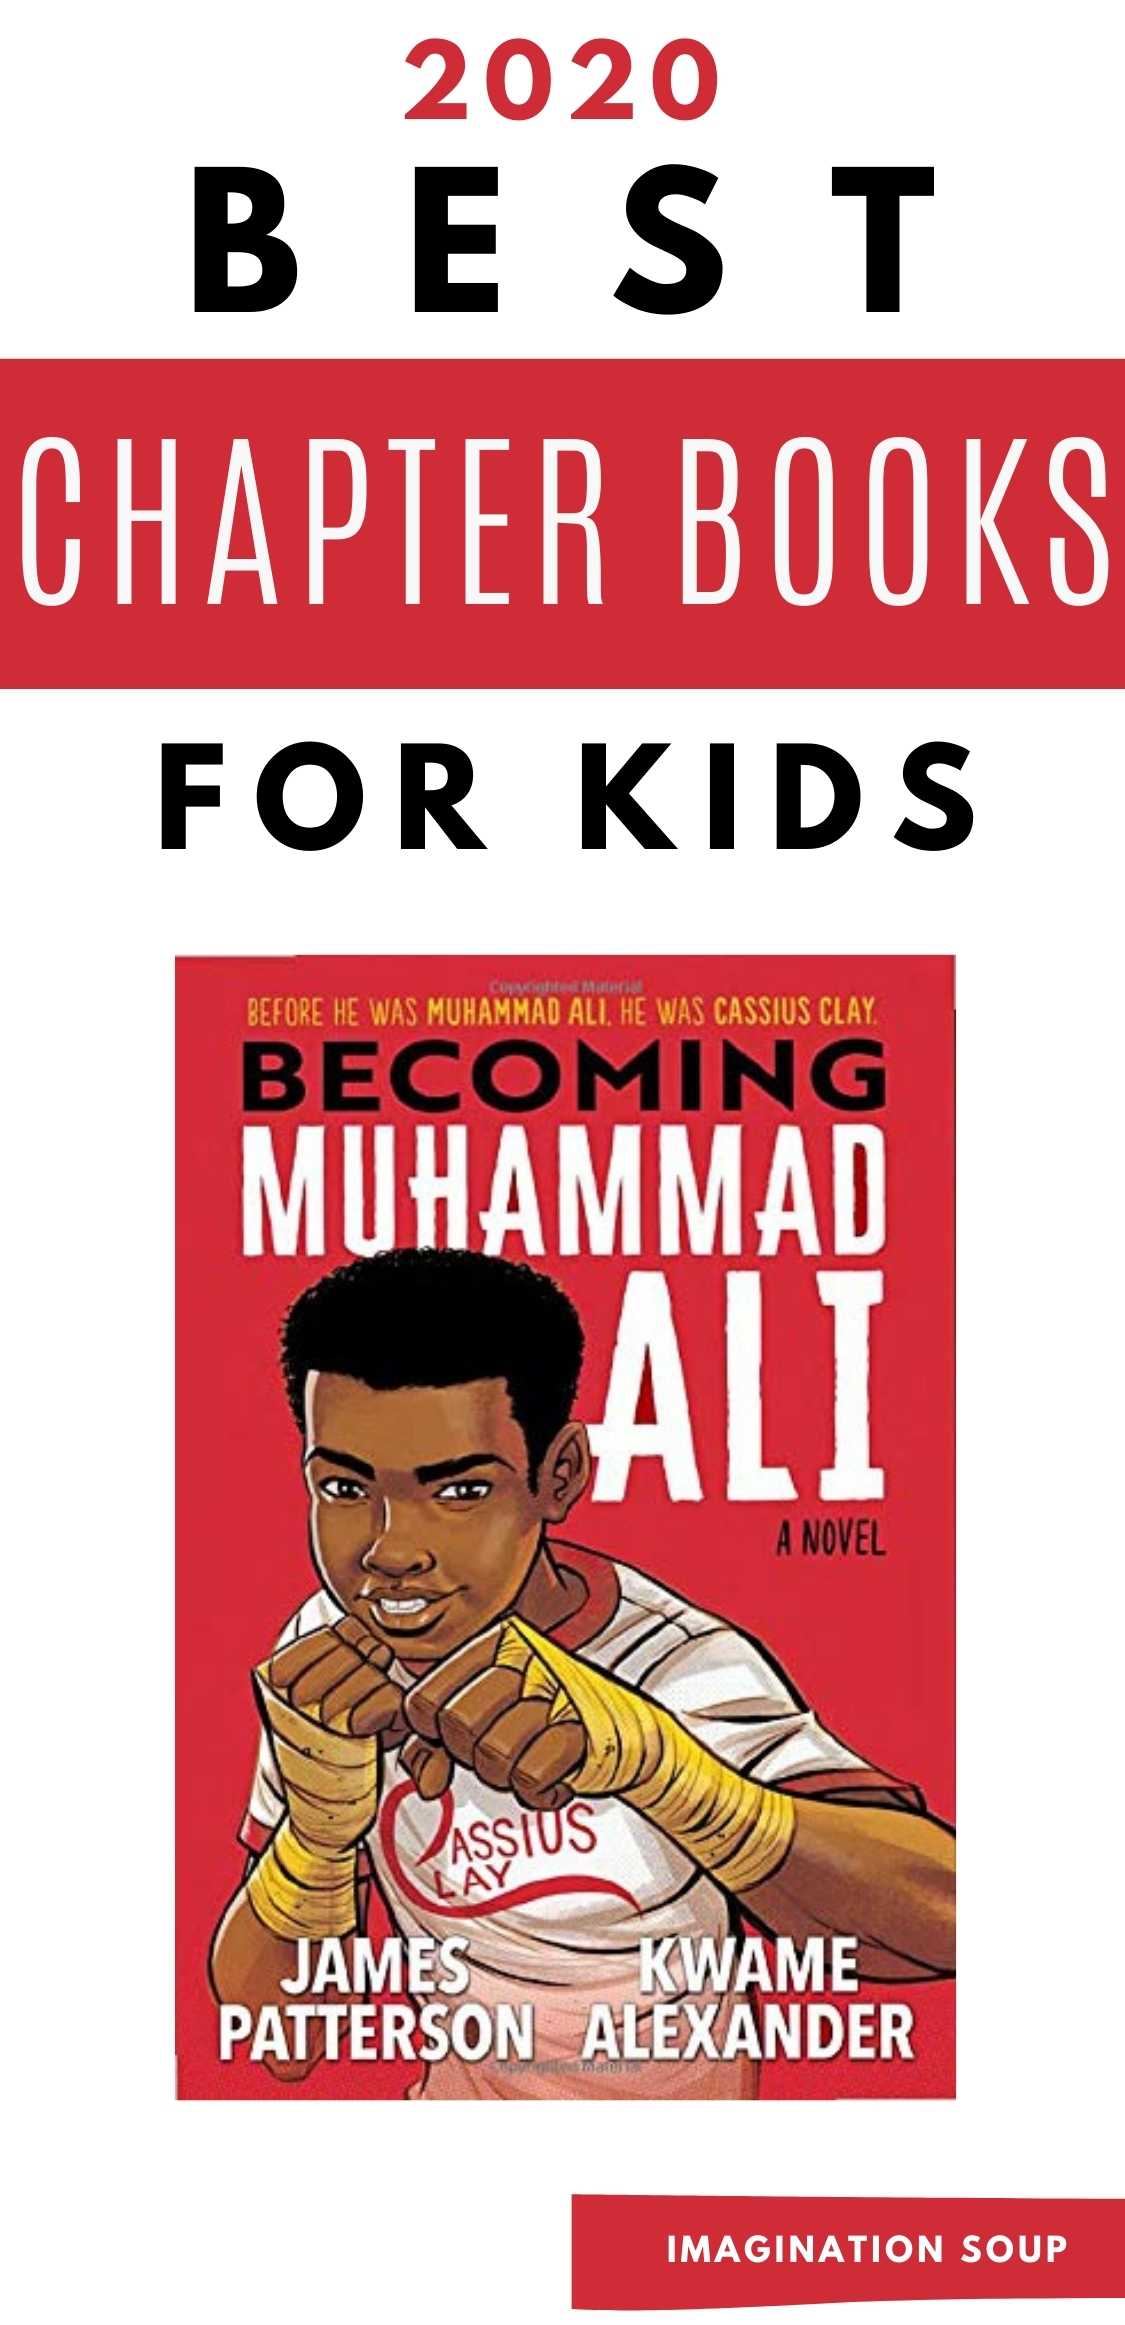 Best Chapter Books for Kids 2020